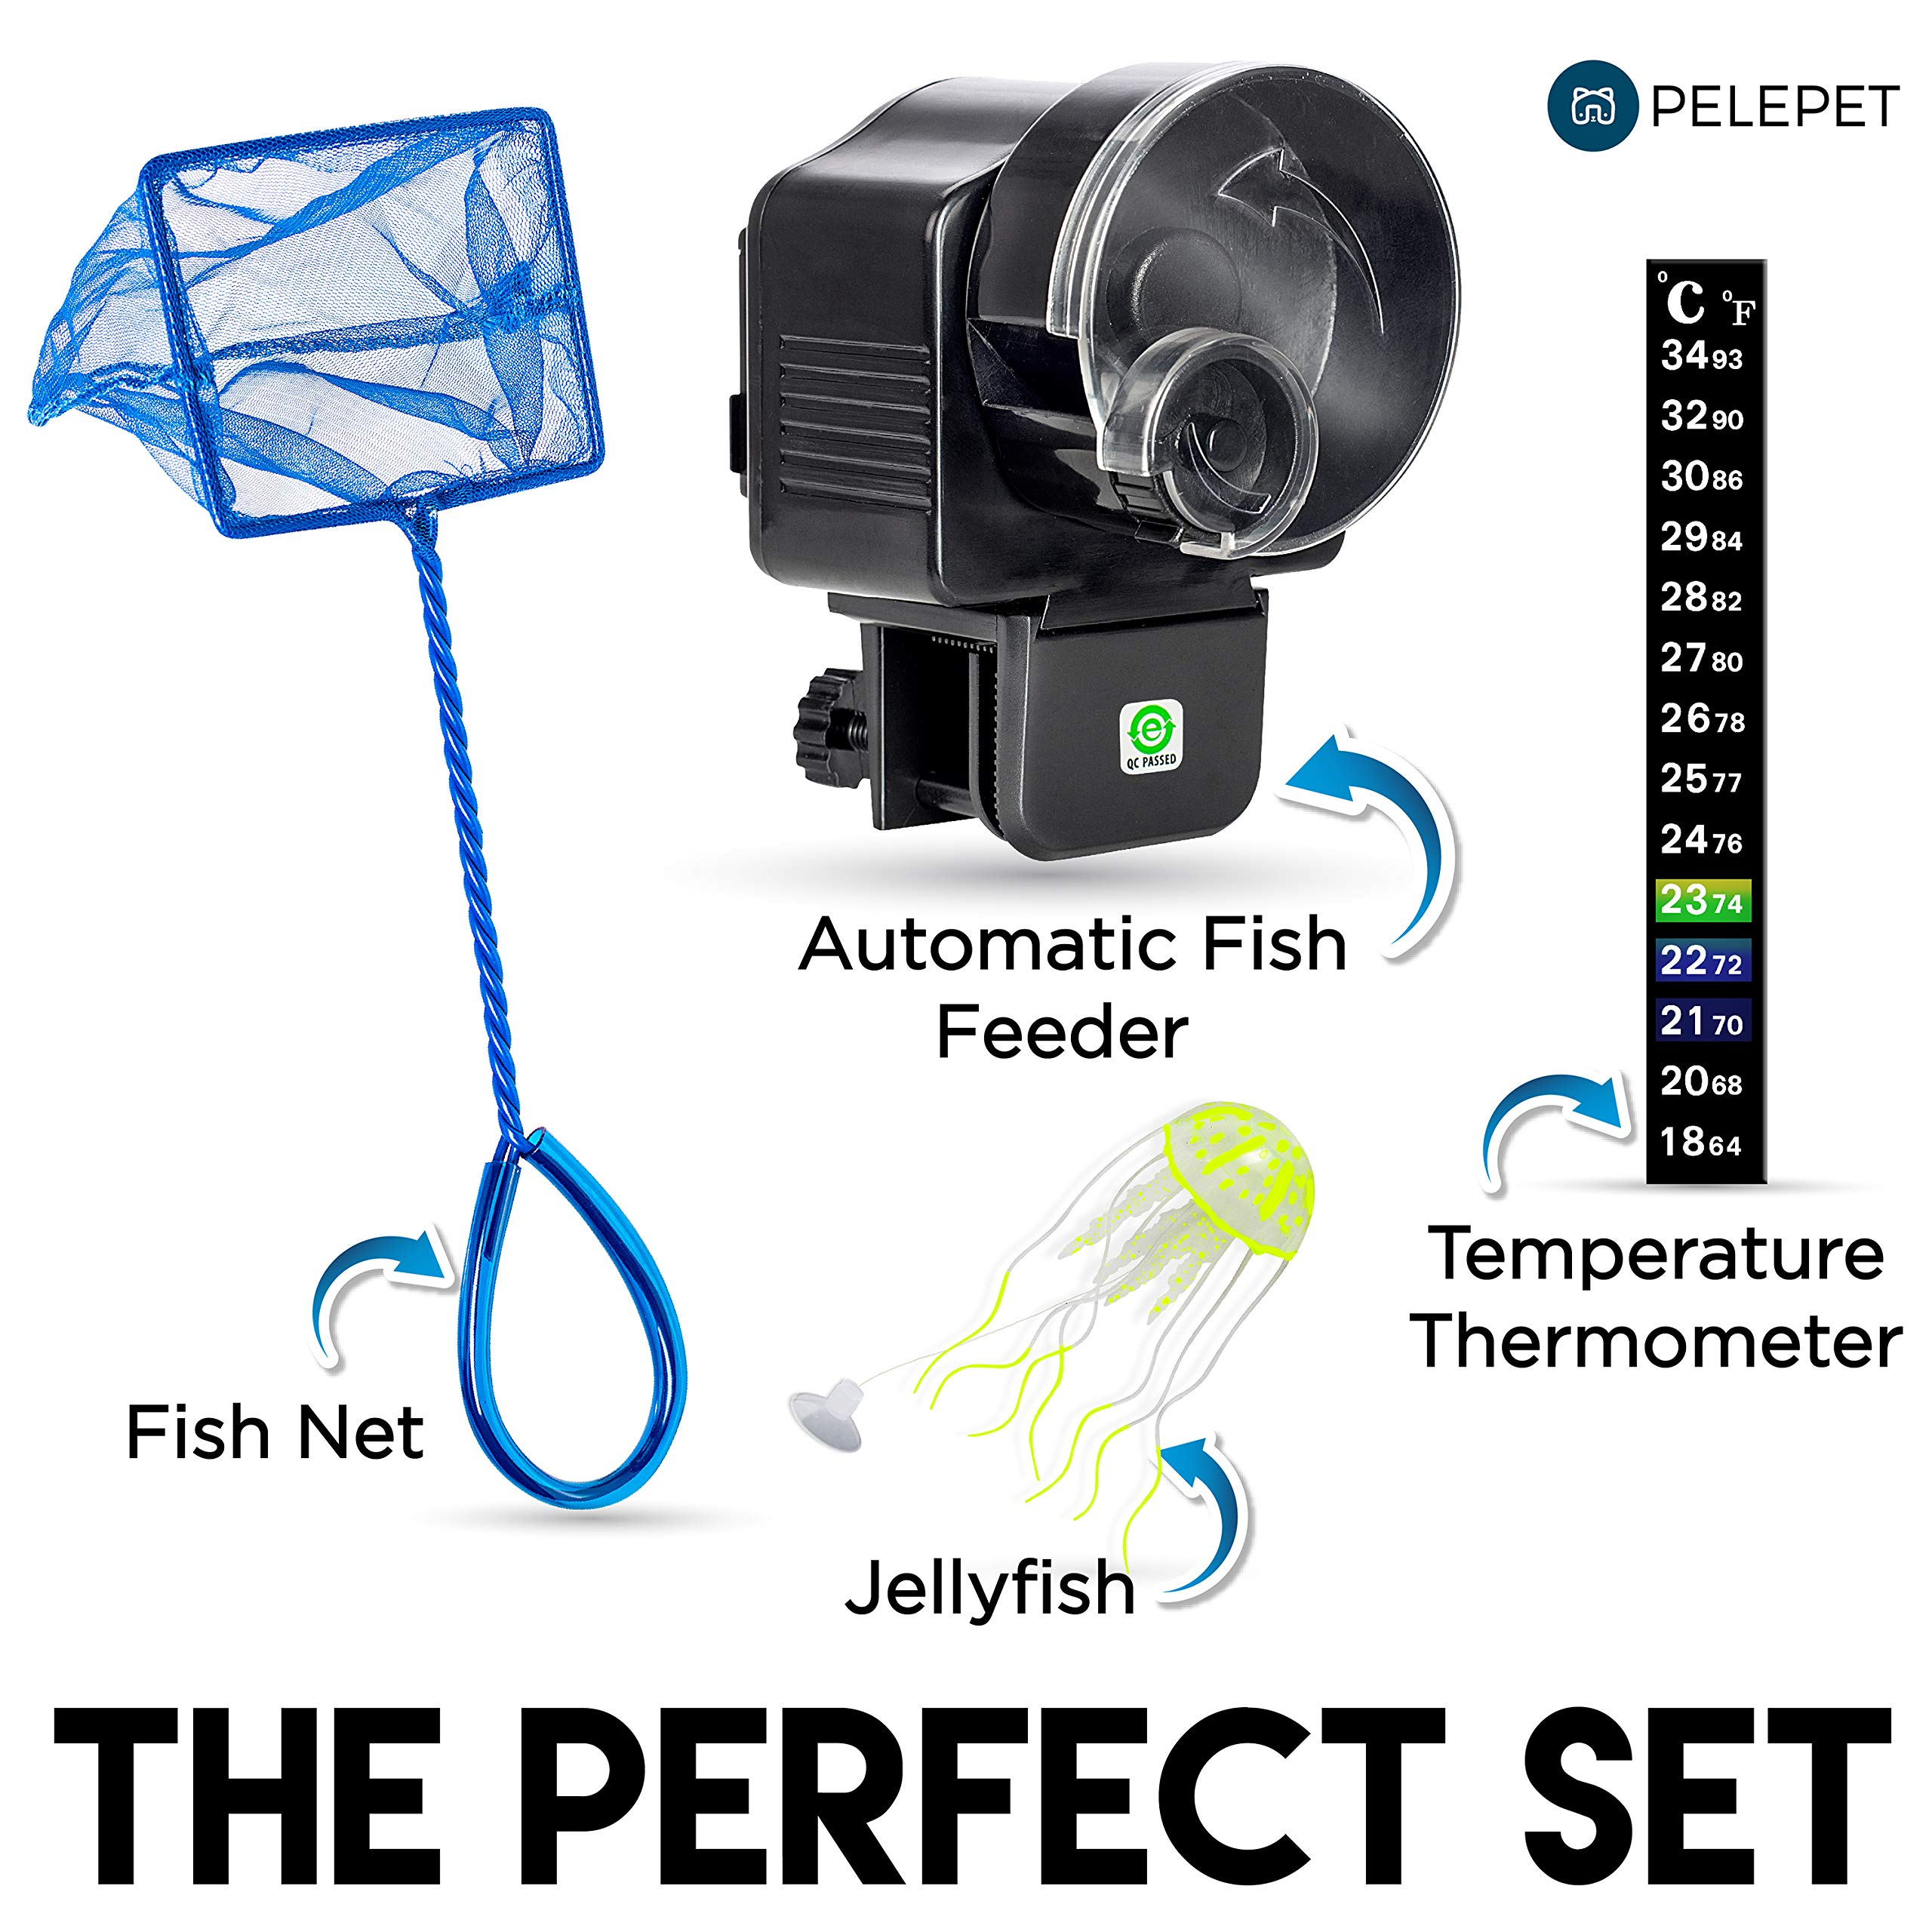 PELEPET Automatic Fish Feeder - Aquarium Feeder - Fish Food Vacation Feeder - Auto Feeding Unit + Net for Fish Tank Thermostat & Jelly Fish - Reliable Long Lasting Fish Food Dispenser by PELEPET